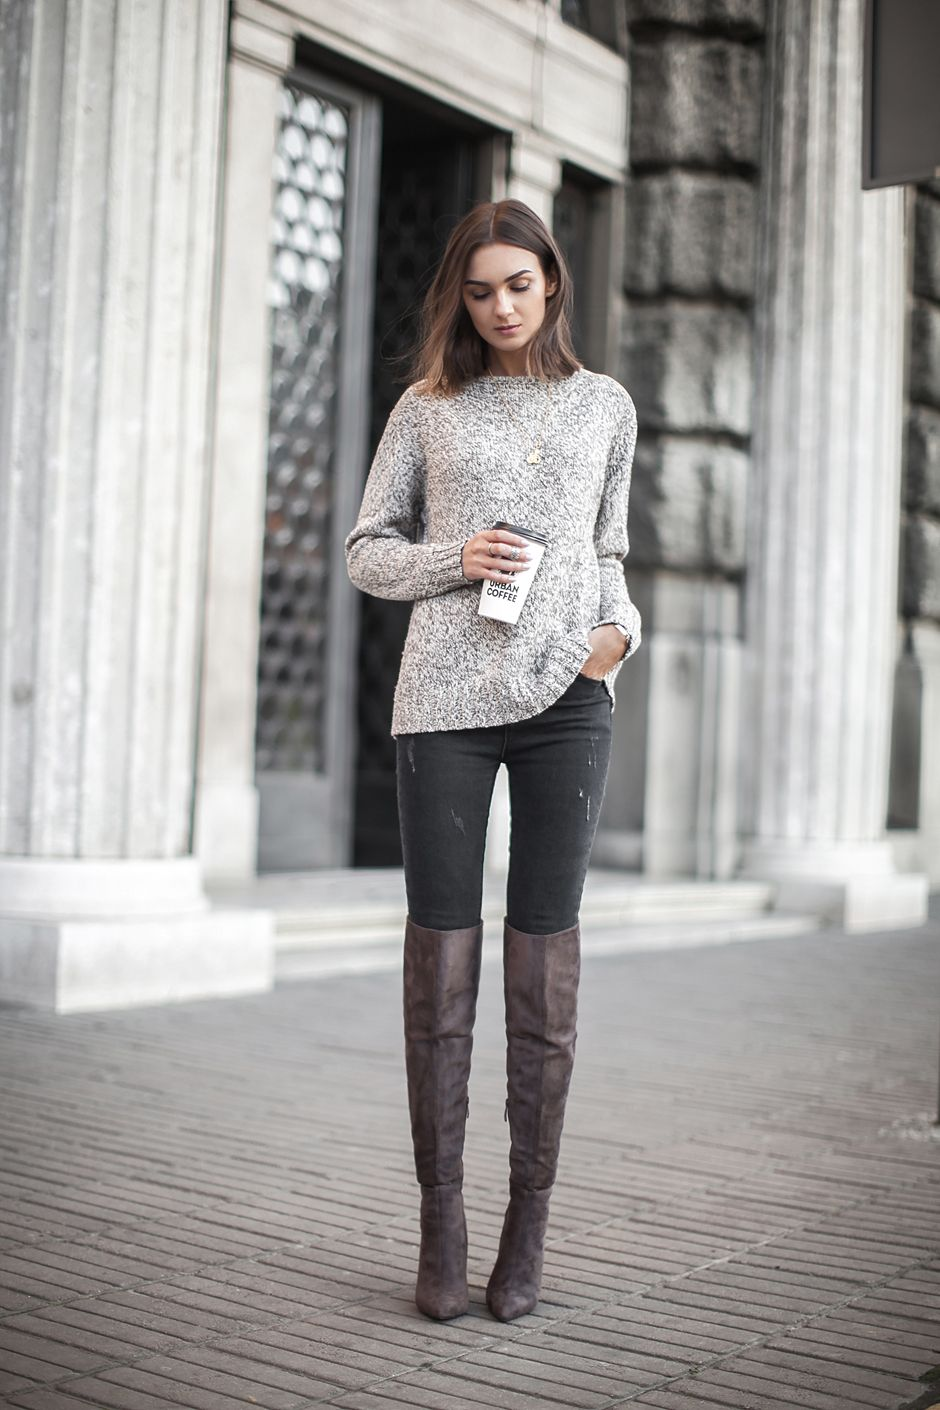 overknees (Fashion Agony) | Over the knee boots outfits ...